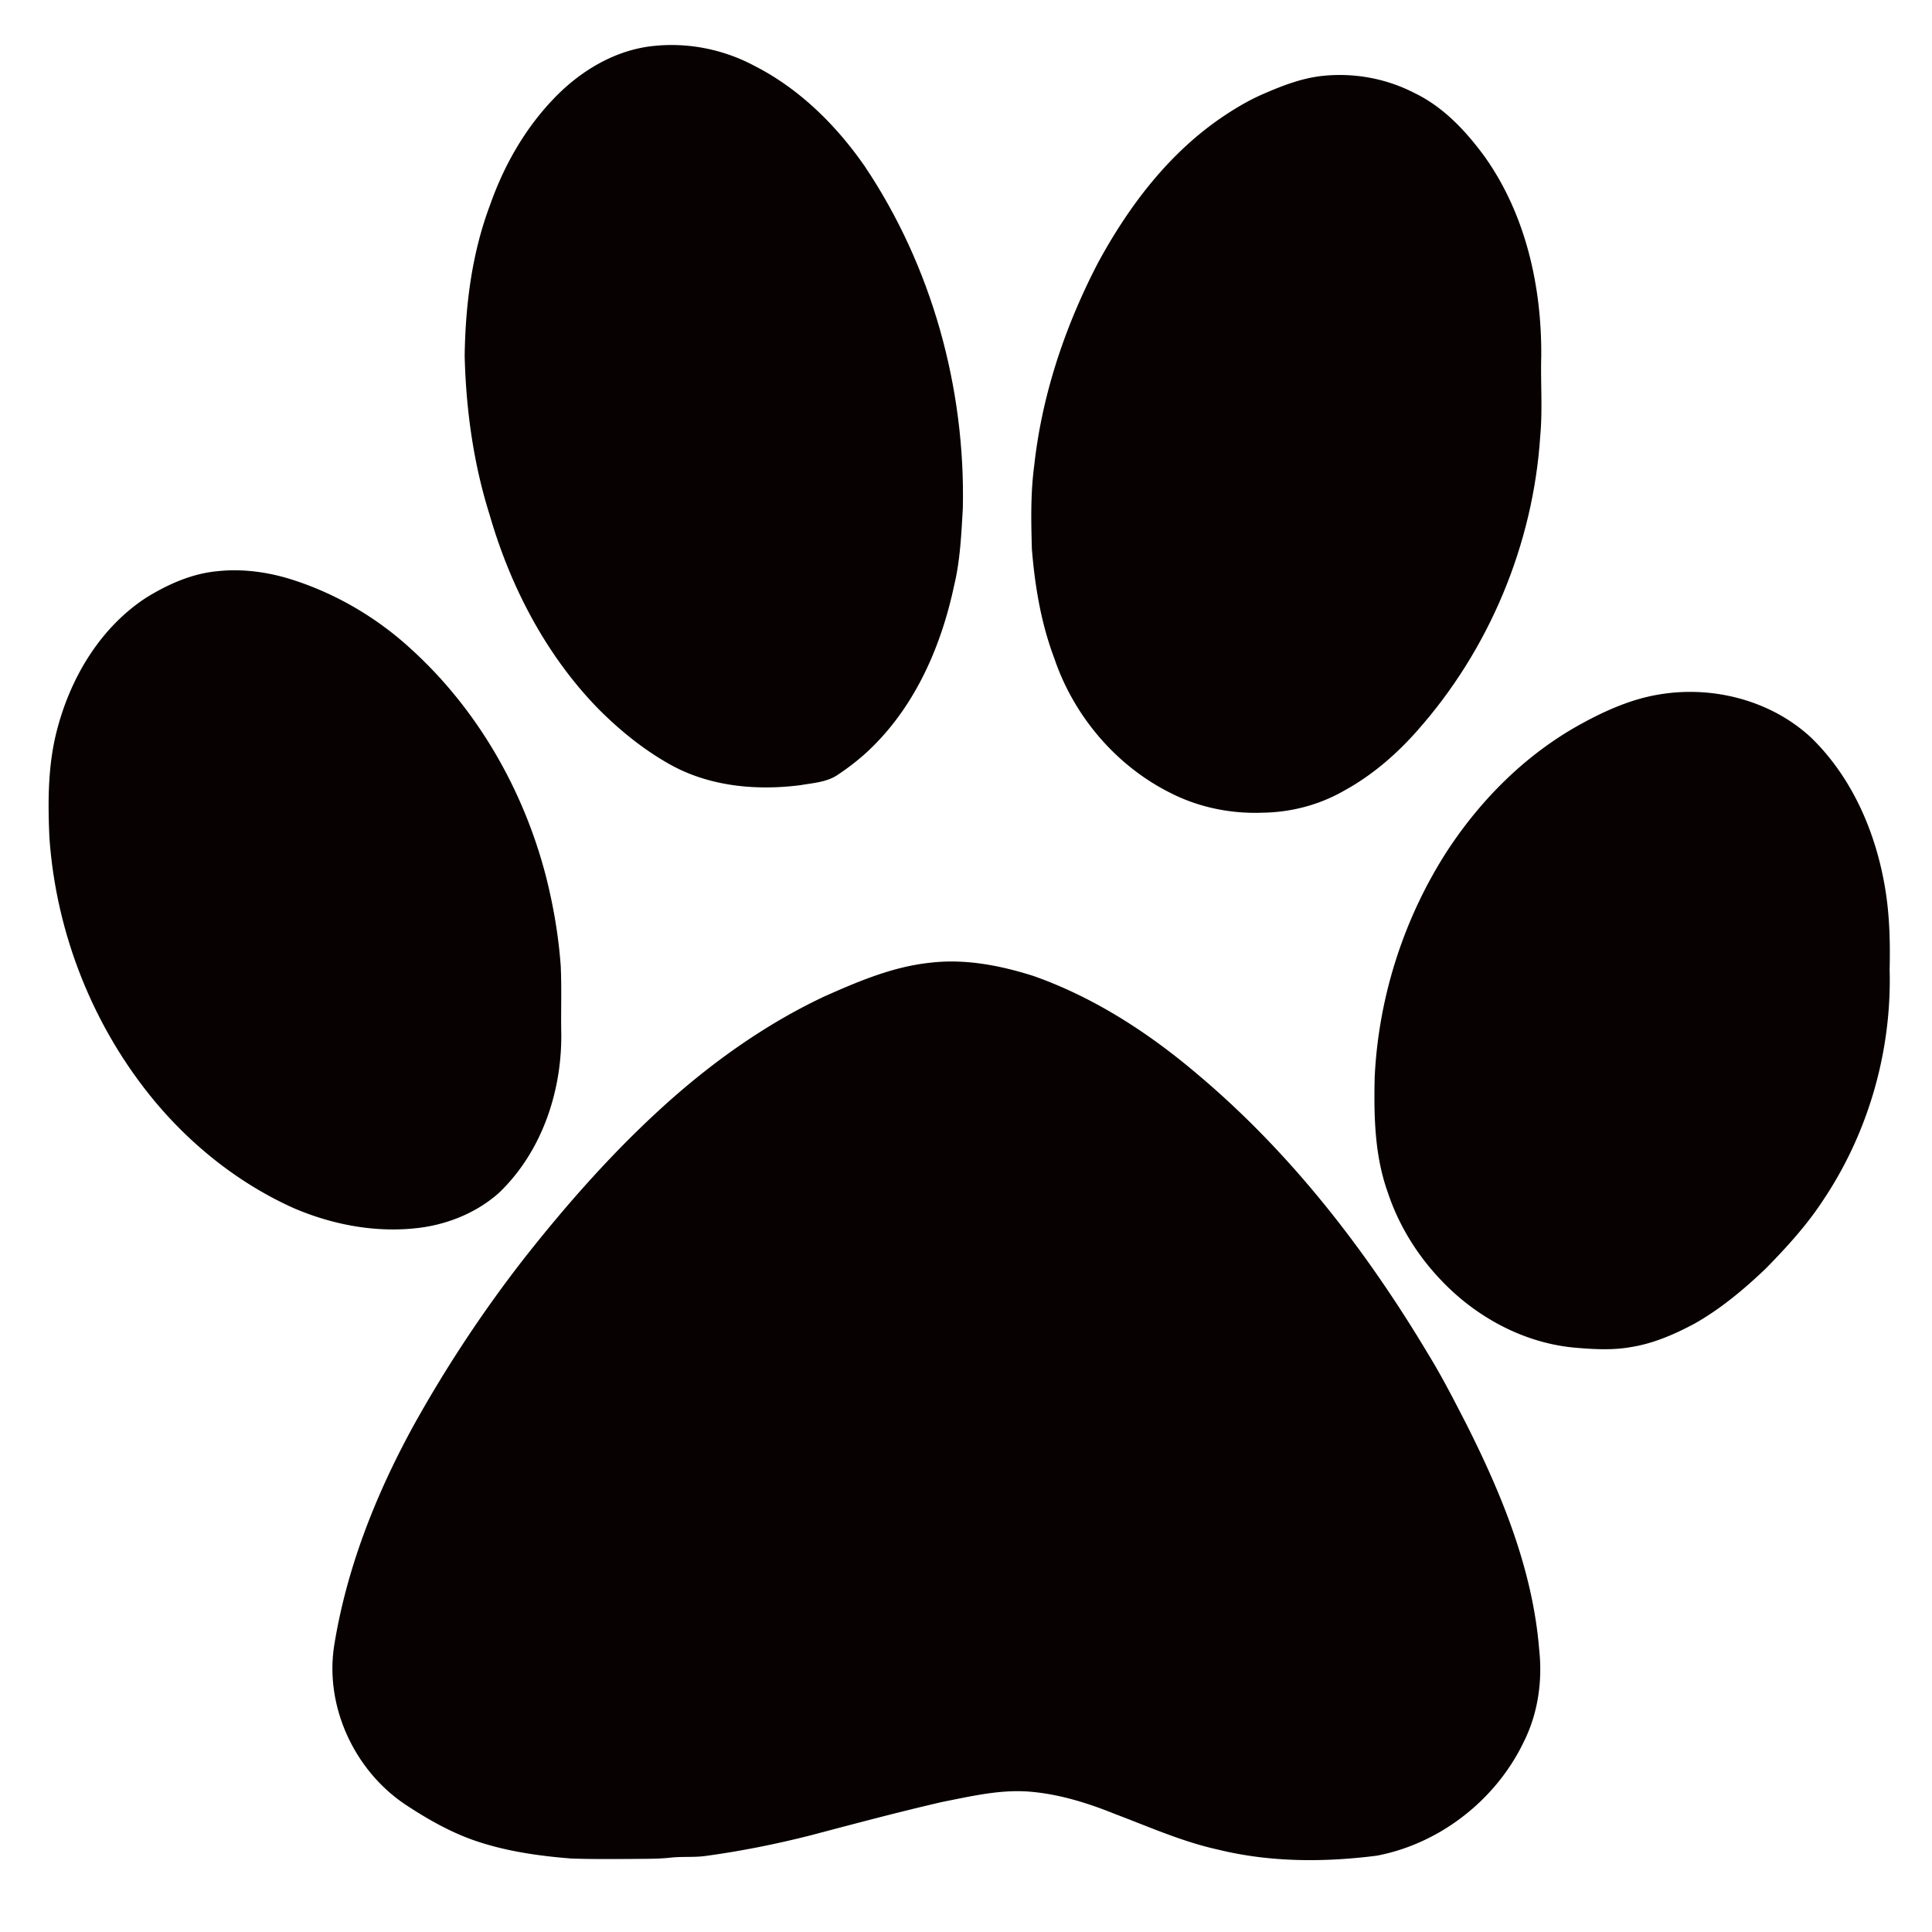 Best Photos of Large Dog Paw Print Template - Dog Paw Print ...